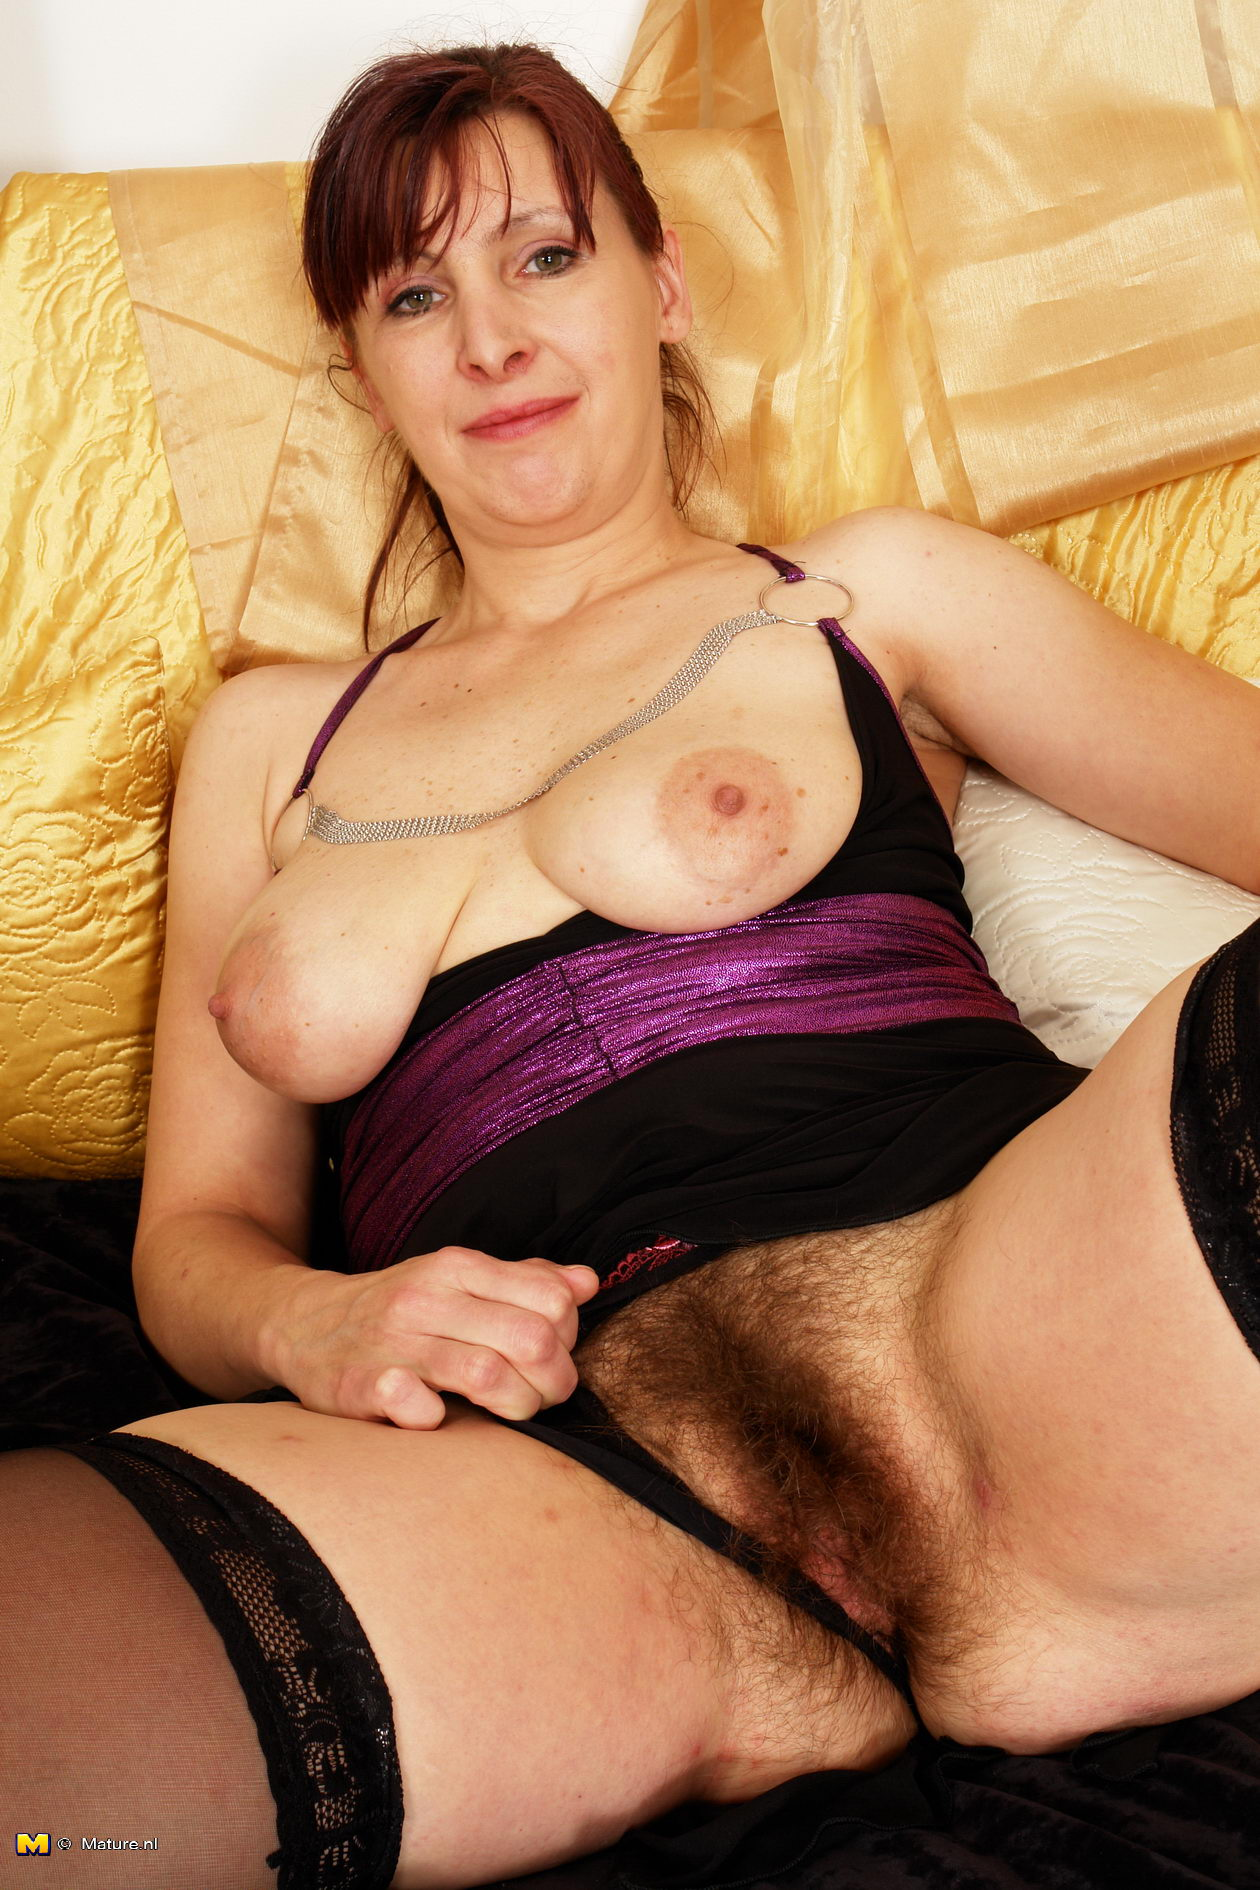 this hairy mom loves to play with herself - grannypornpics